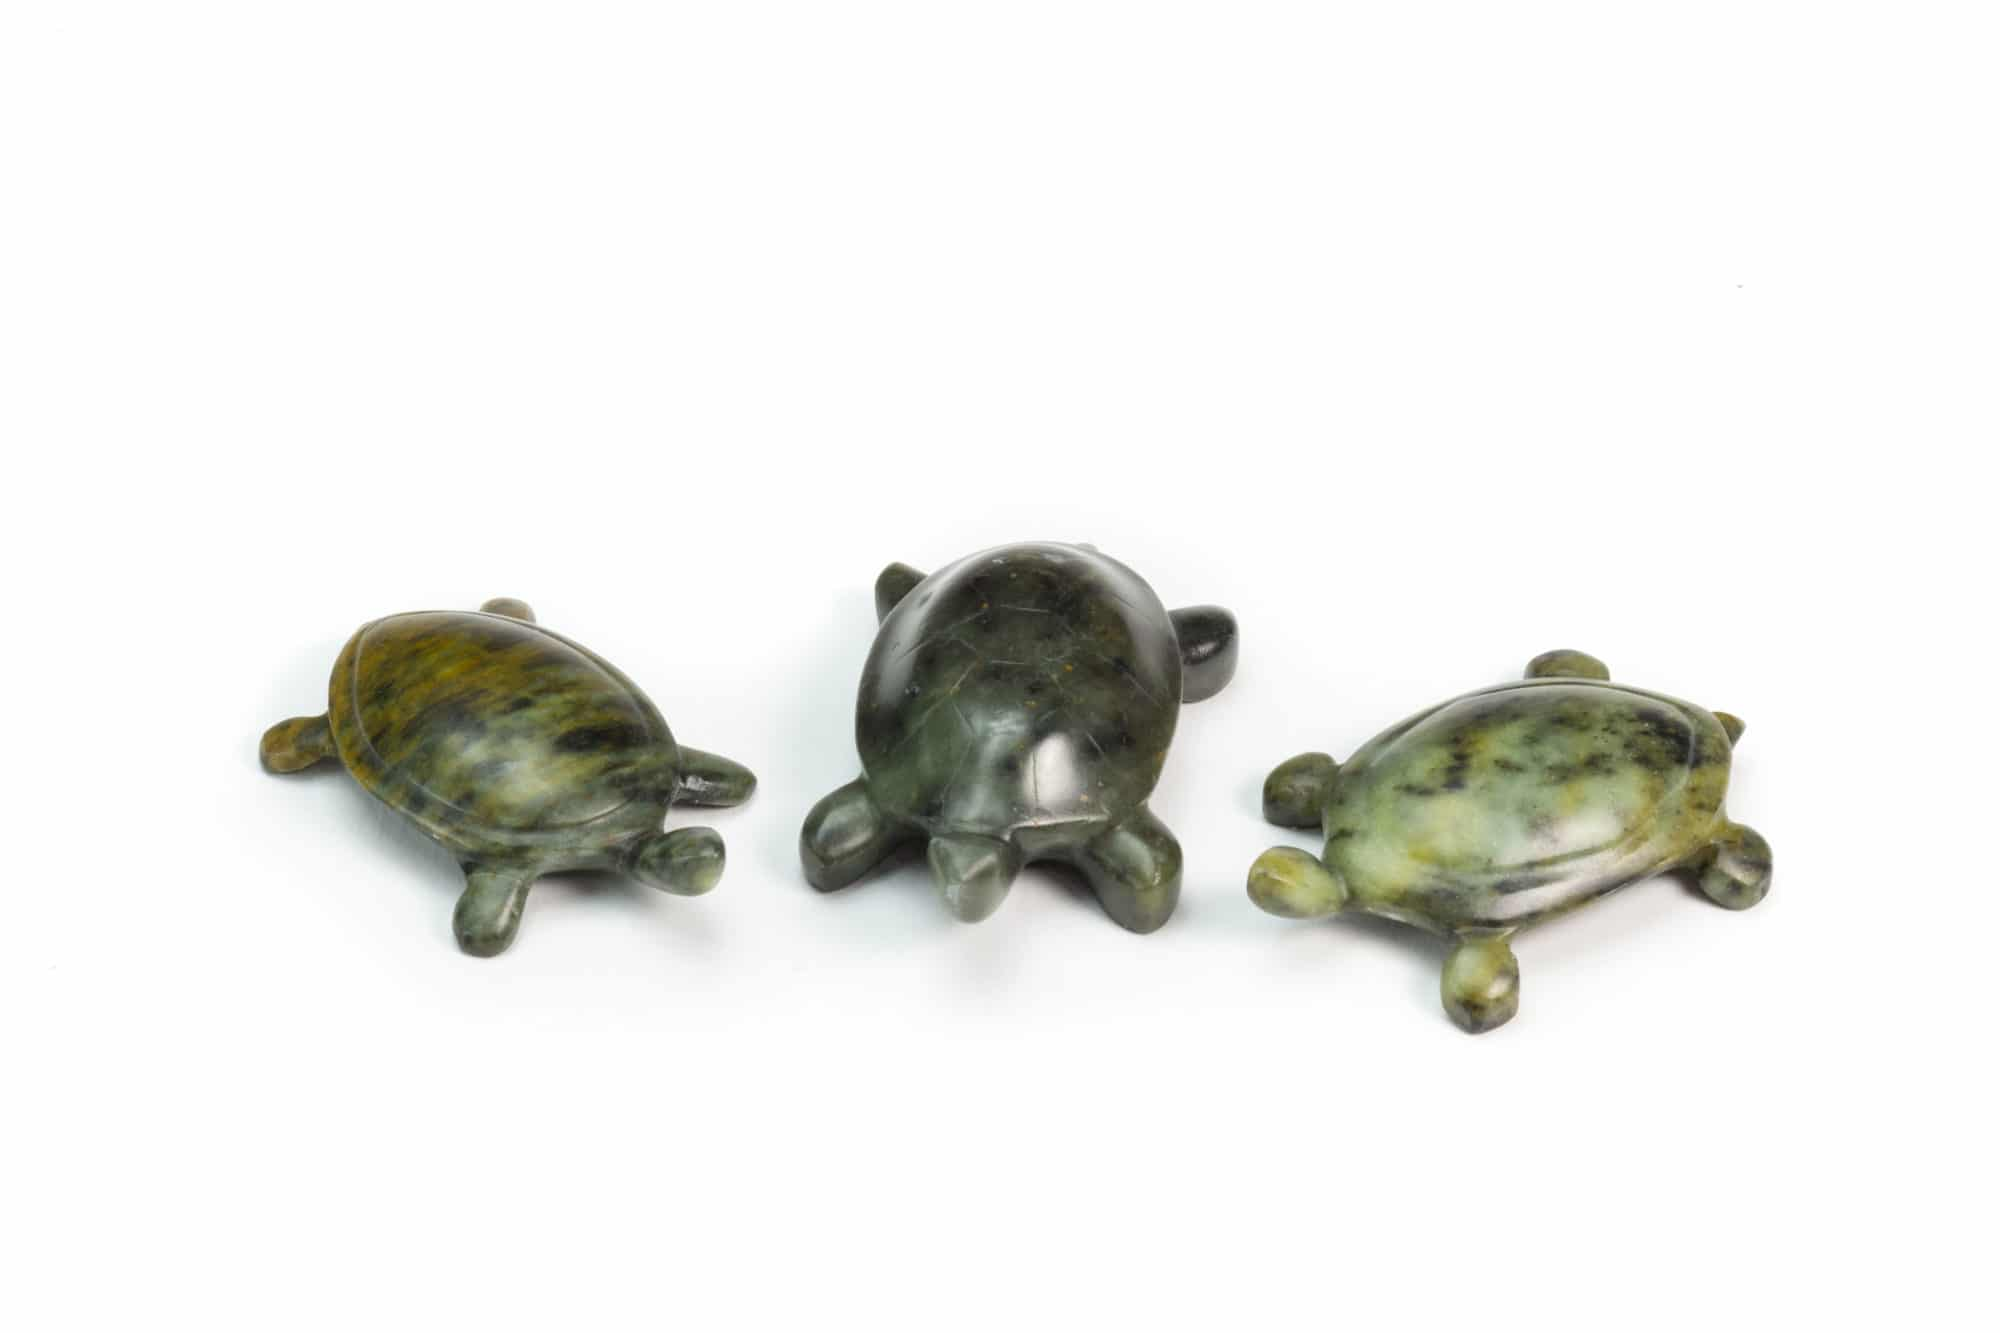 Three turtles carved from a soapstone